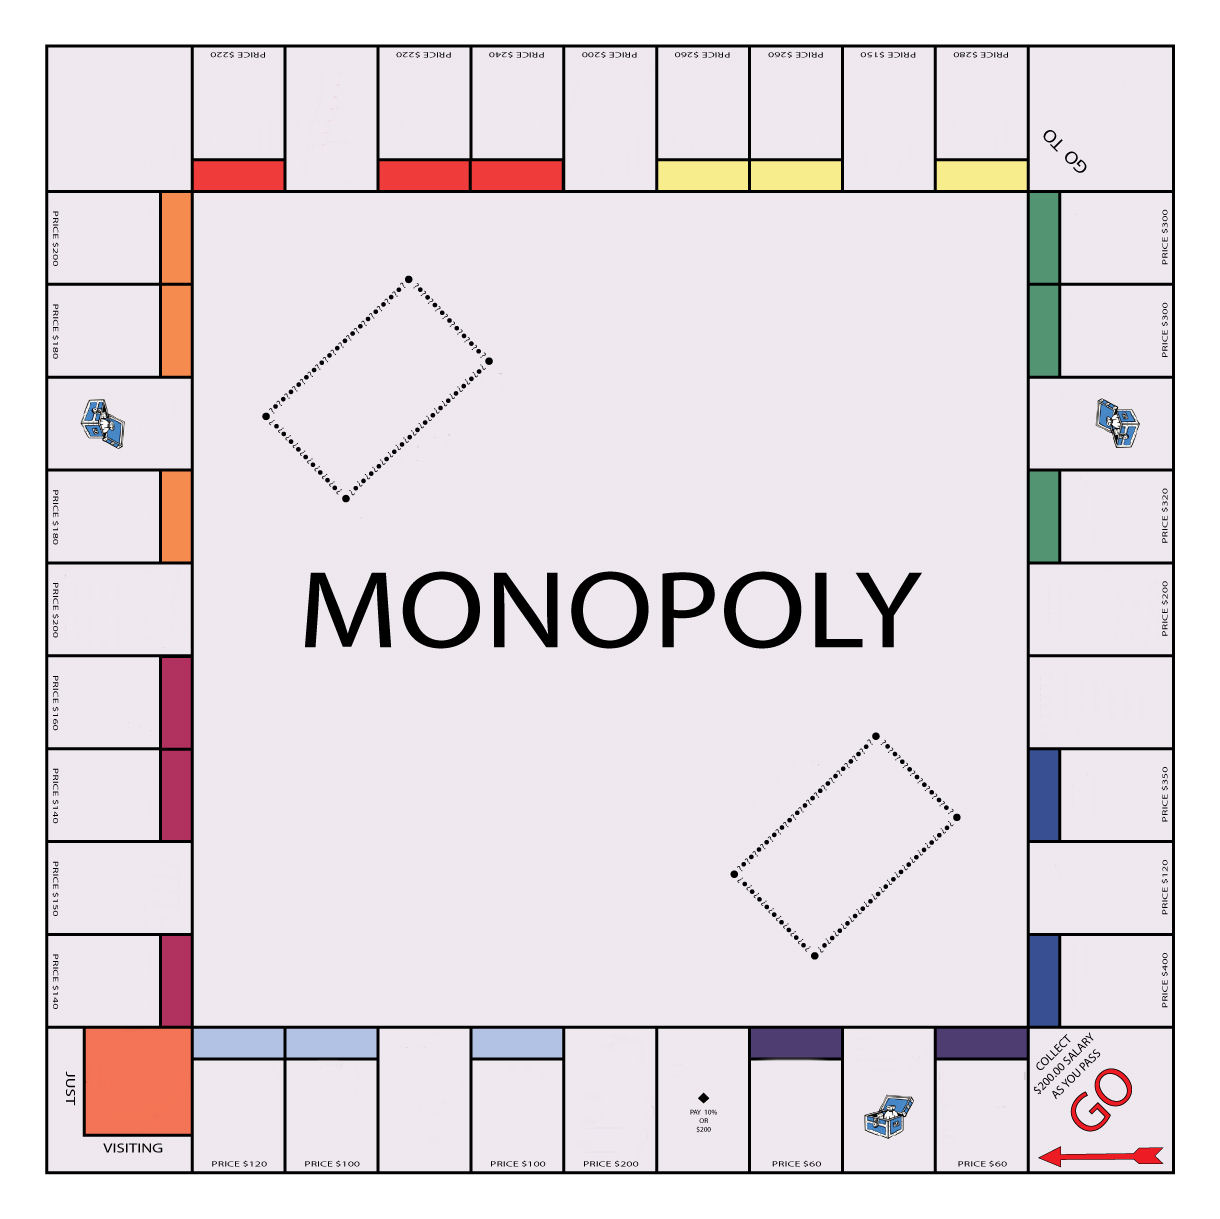 custom monopoly board template economic development news for sun prairie wisconsin if